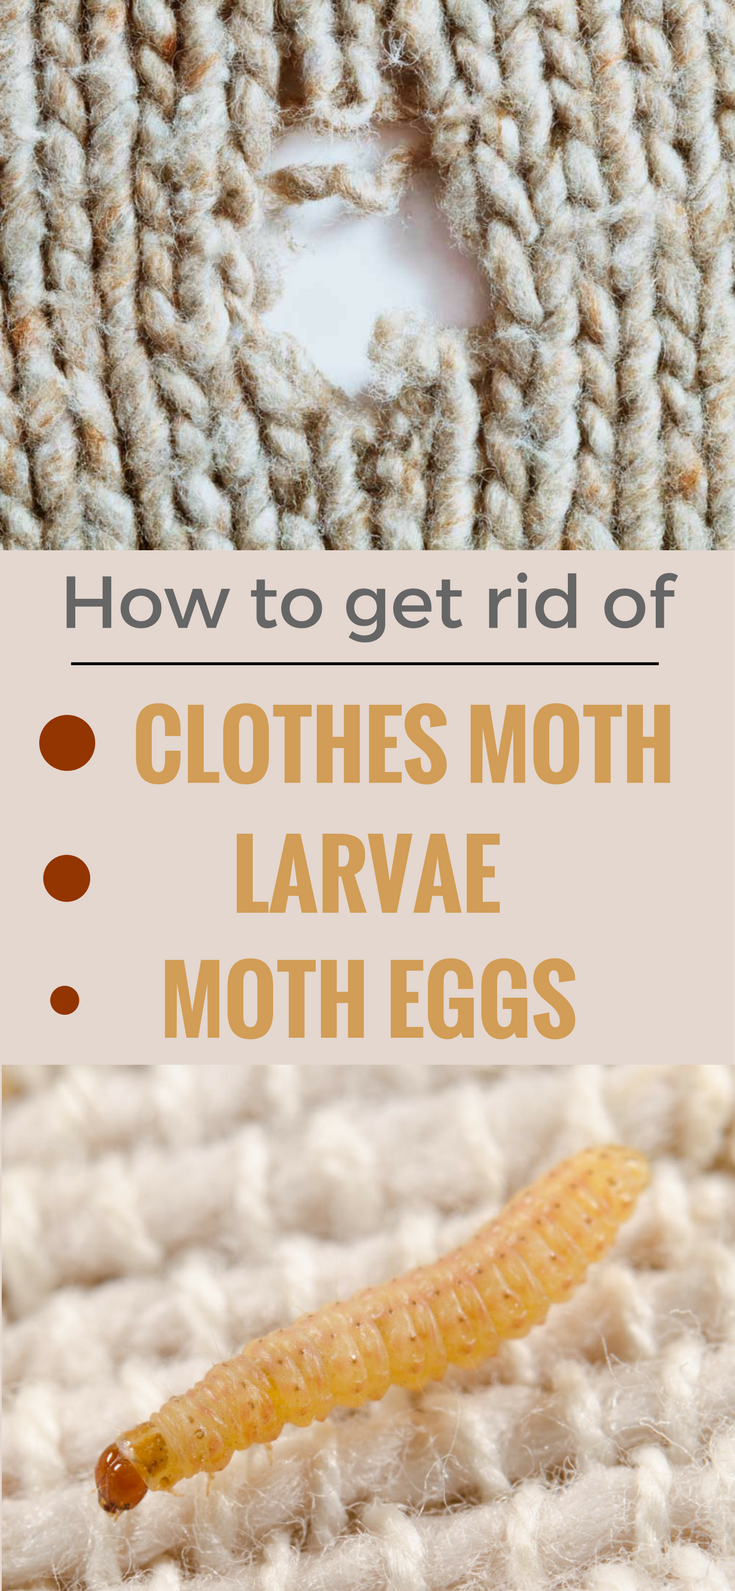 Best Methods To Get Rid Of Clothes Moth Larvae And Eggs